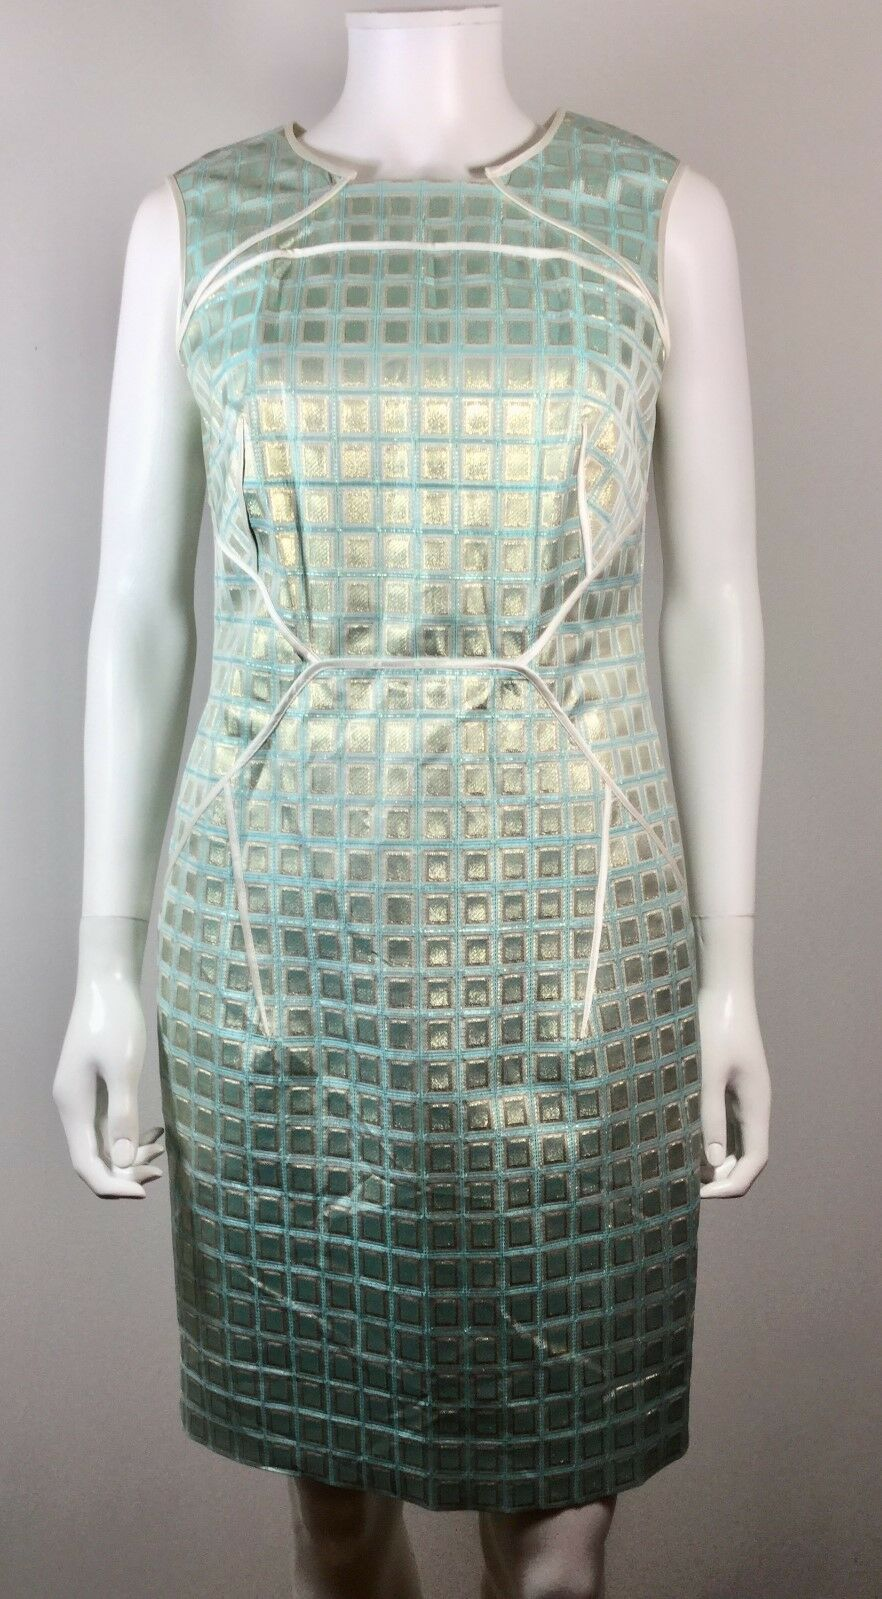 PER SE Metallic Teal Sleeveless Sheath Dress Größe 2